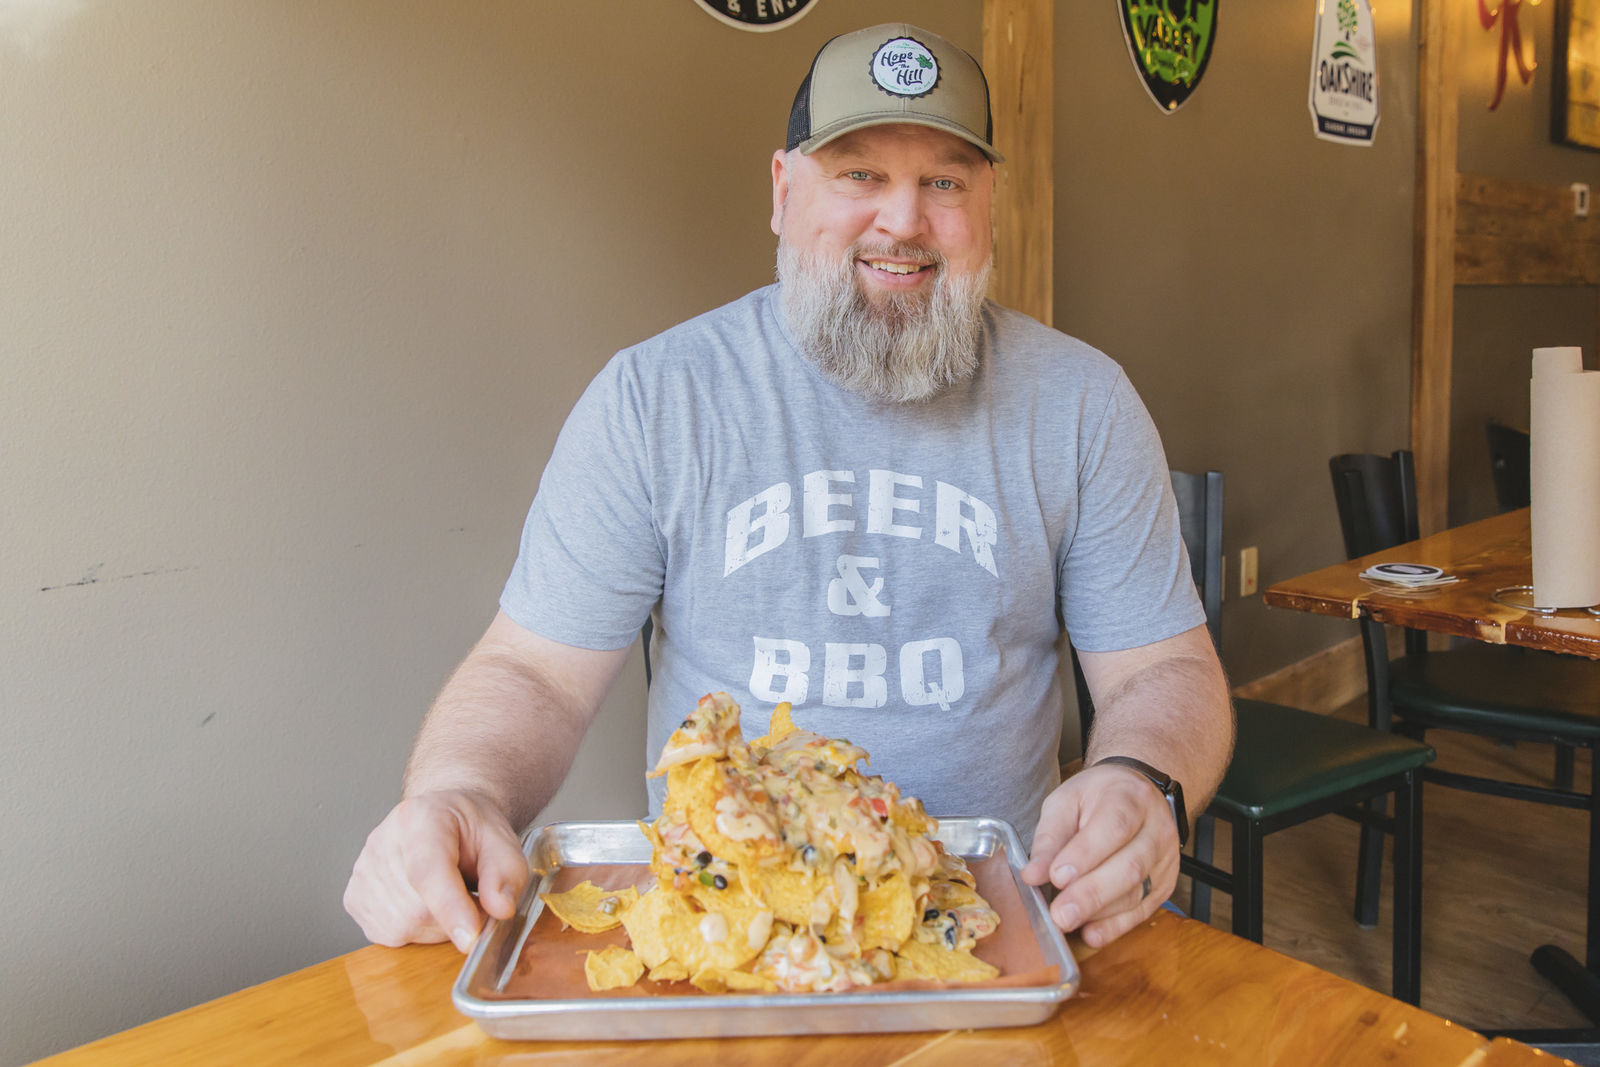 "<a  href=""https://hopsonthehillwa.com/"" target=""_blank"" title=""https://hopsonthehillwa.com/"">Hops on the Hill</a>{&nbsp;}in Tumwater is back open as of July 2, which means their famous Hill ""Can"" Nachos are yours for the taking once again! Topped with black bean corn pico, cheddar jack cheese, topped with queso and the option to add brisket, port & turkey or smoked carrot - you won't leave hungry. Hops on the Hill is a combo of ""craft beer meets Central Texas style BBQ"" and is open Tuesday thru Saturday, 12-9pm. (Image: Sunita Martini / Seattle Refined){&nbsp;}"